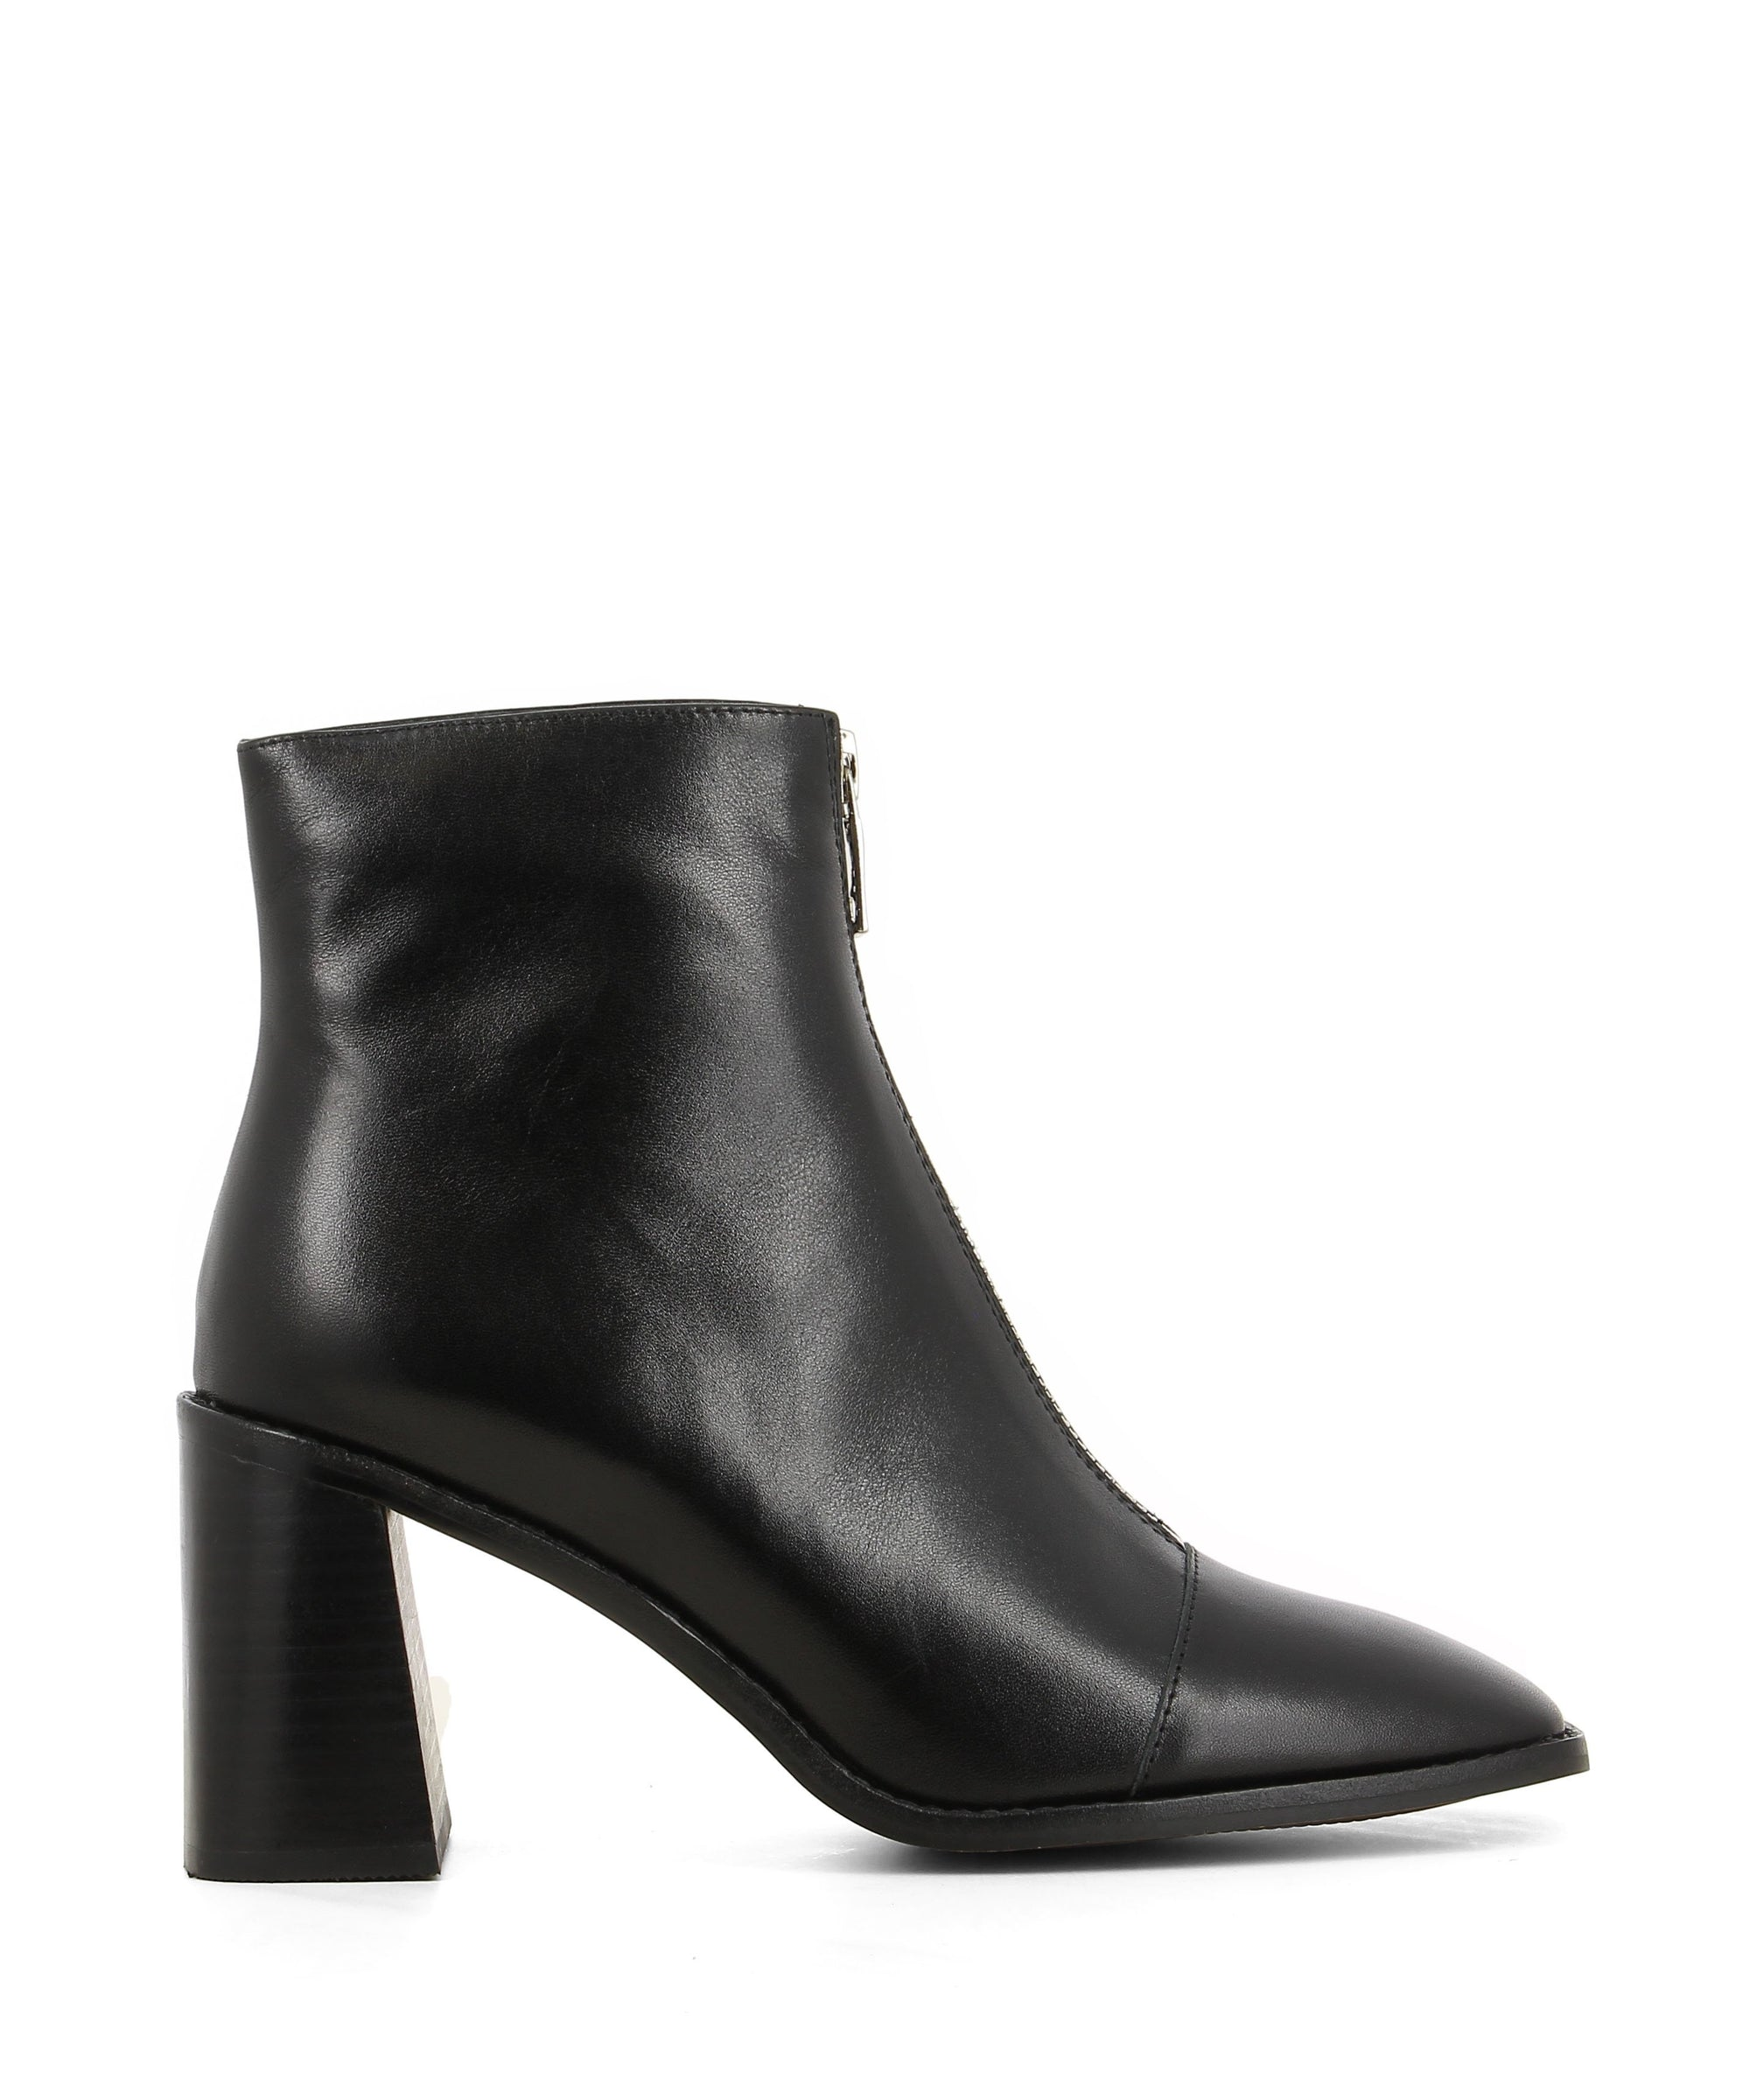 Stylish black leather ankle boots that have a front zipper fastening and feature a 7.5cm tall block heel, a silver front zipper fastening and a square toe by 2 Baia Vista.